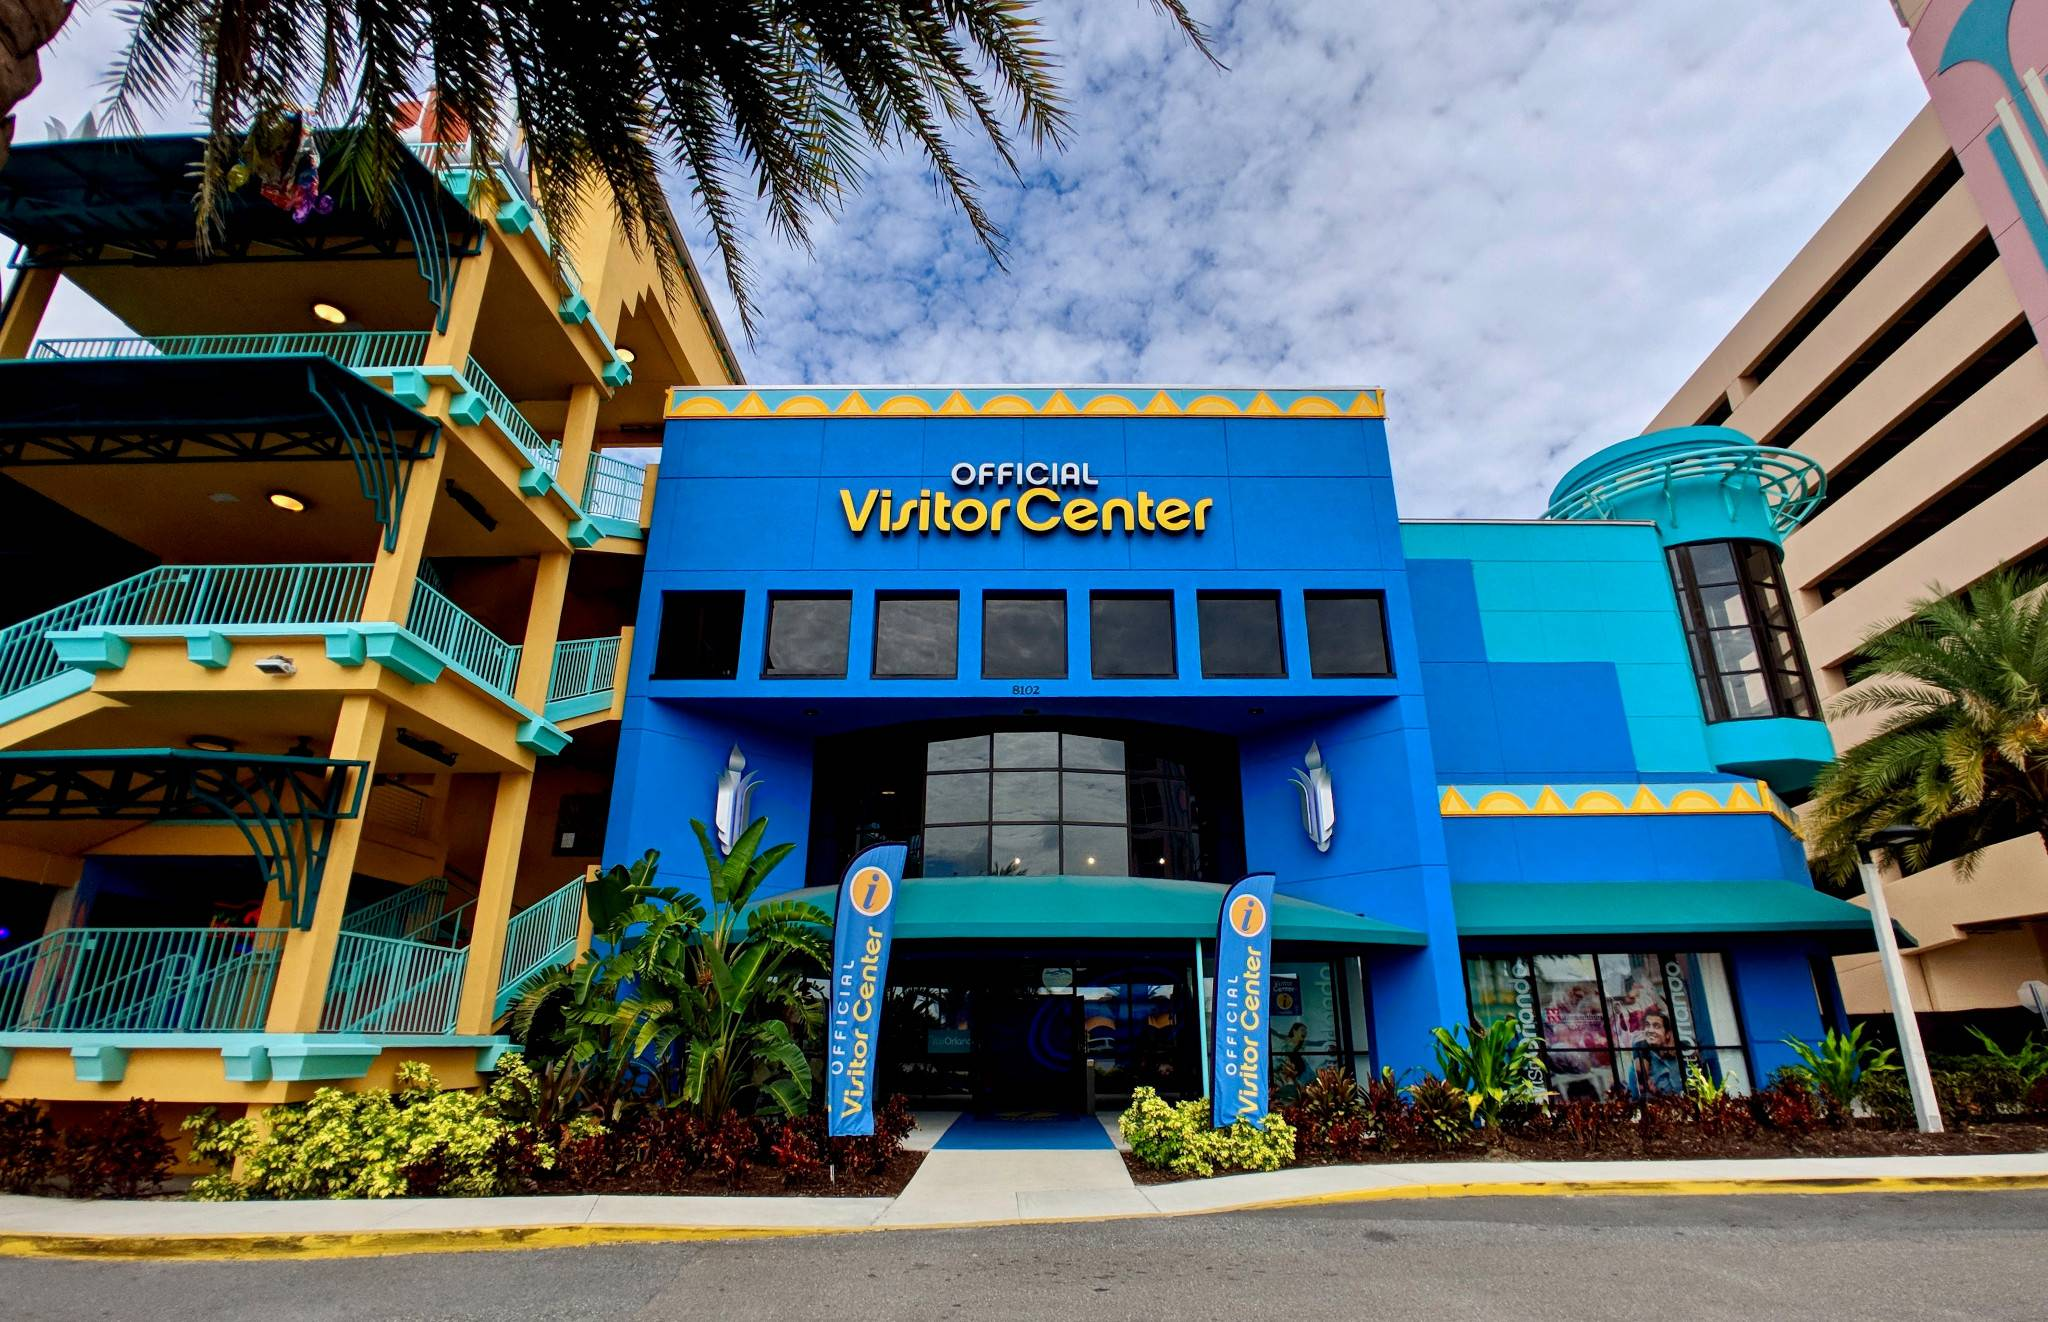 Exterior shot of Visit Orlando's Official Visitor Center on International Drive